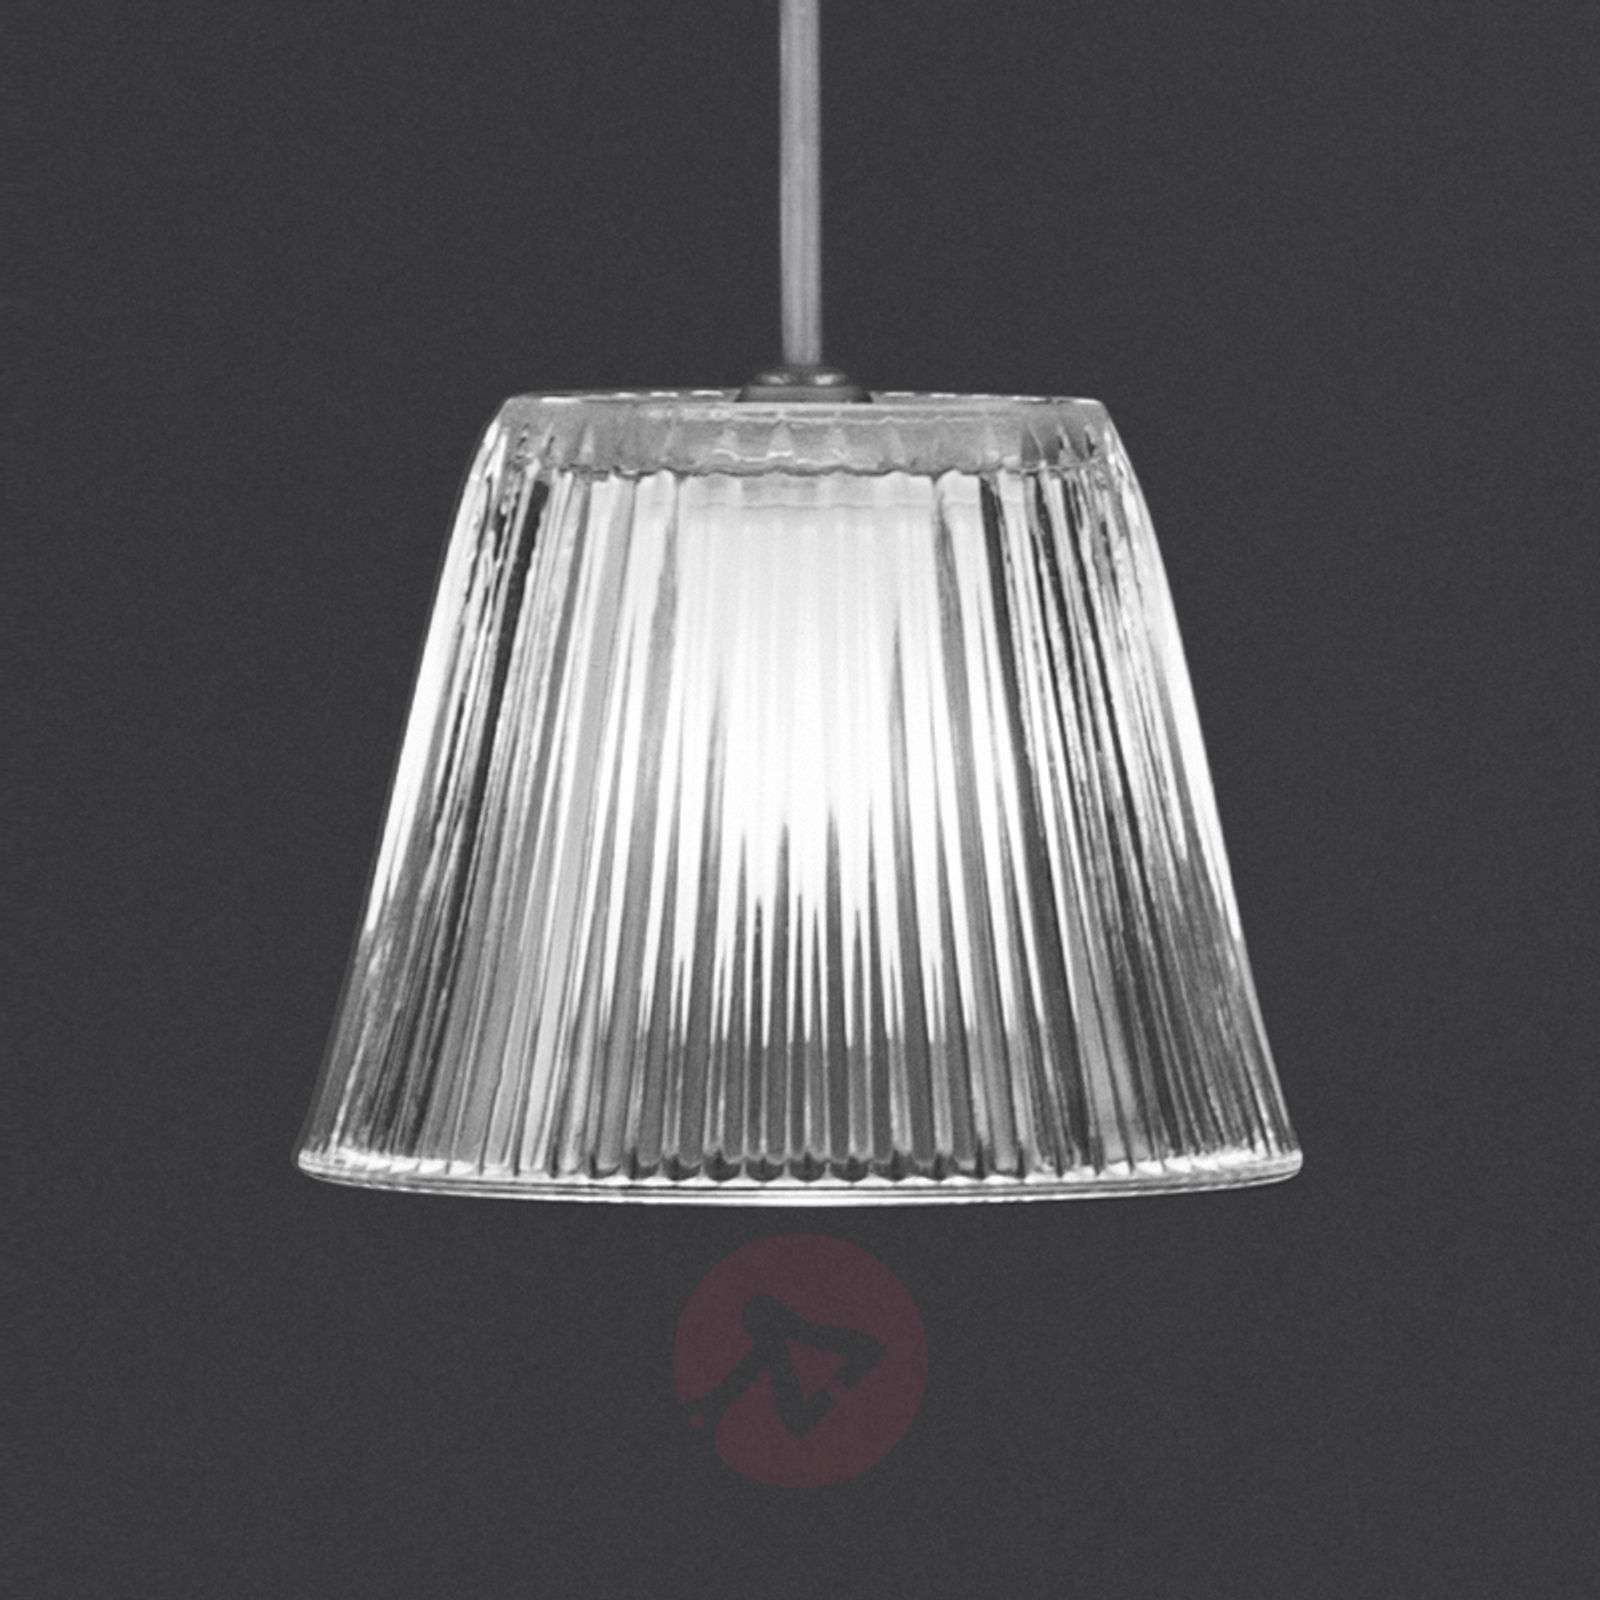 Small Romeo Babe S pendant lamp by FLOS | Lights.co.uk